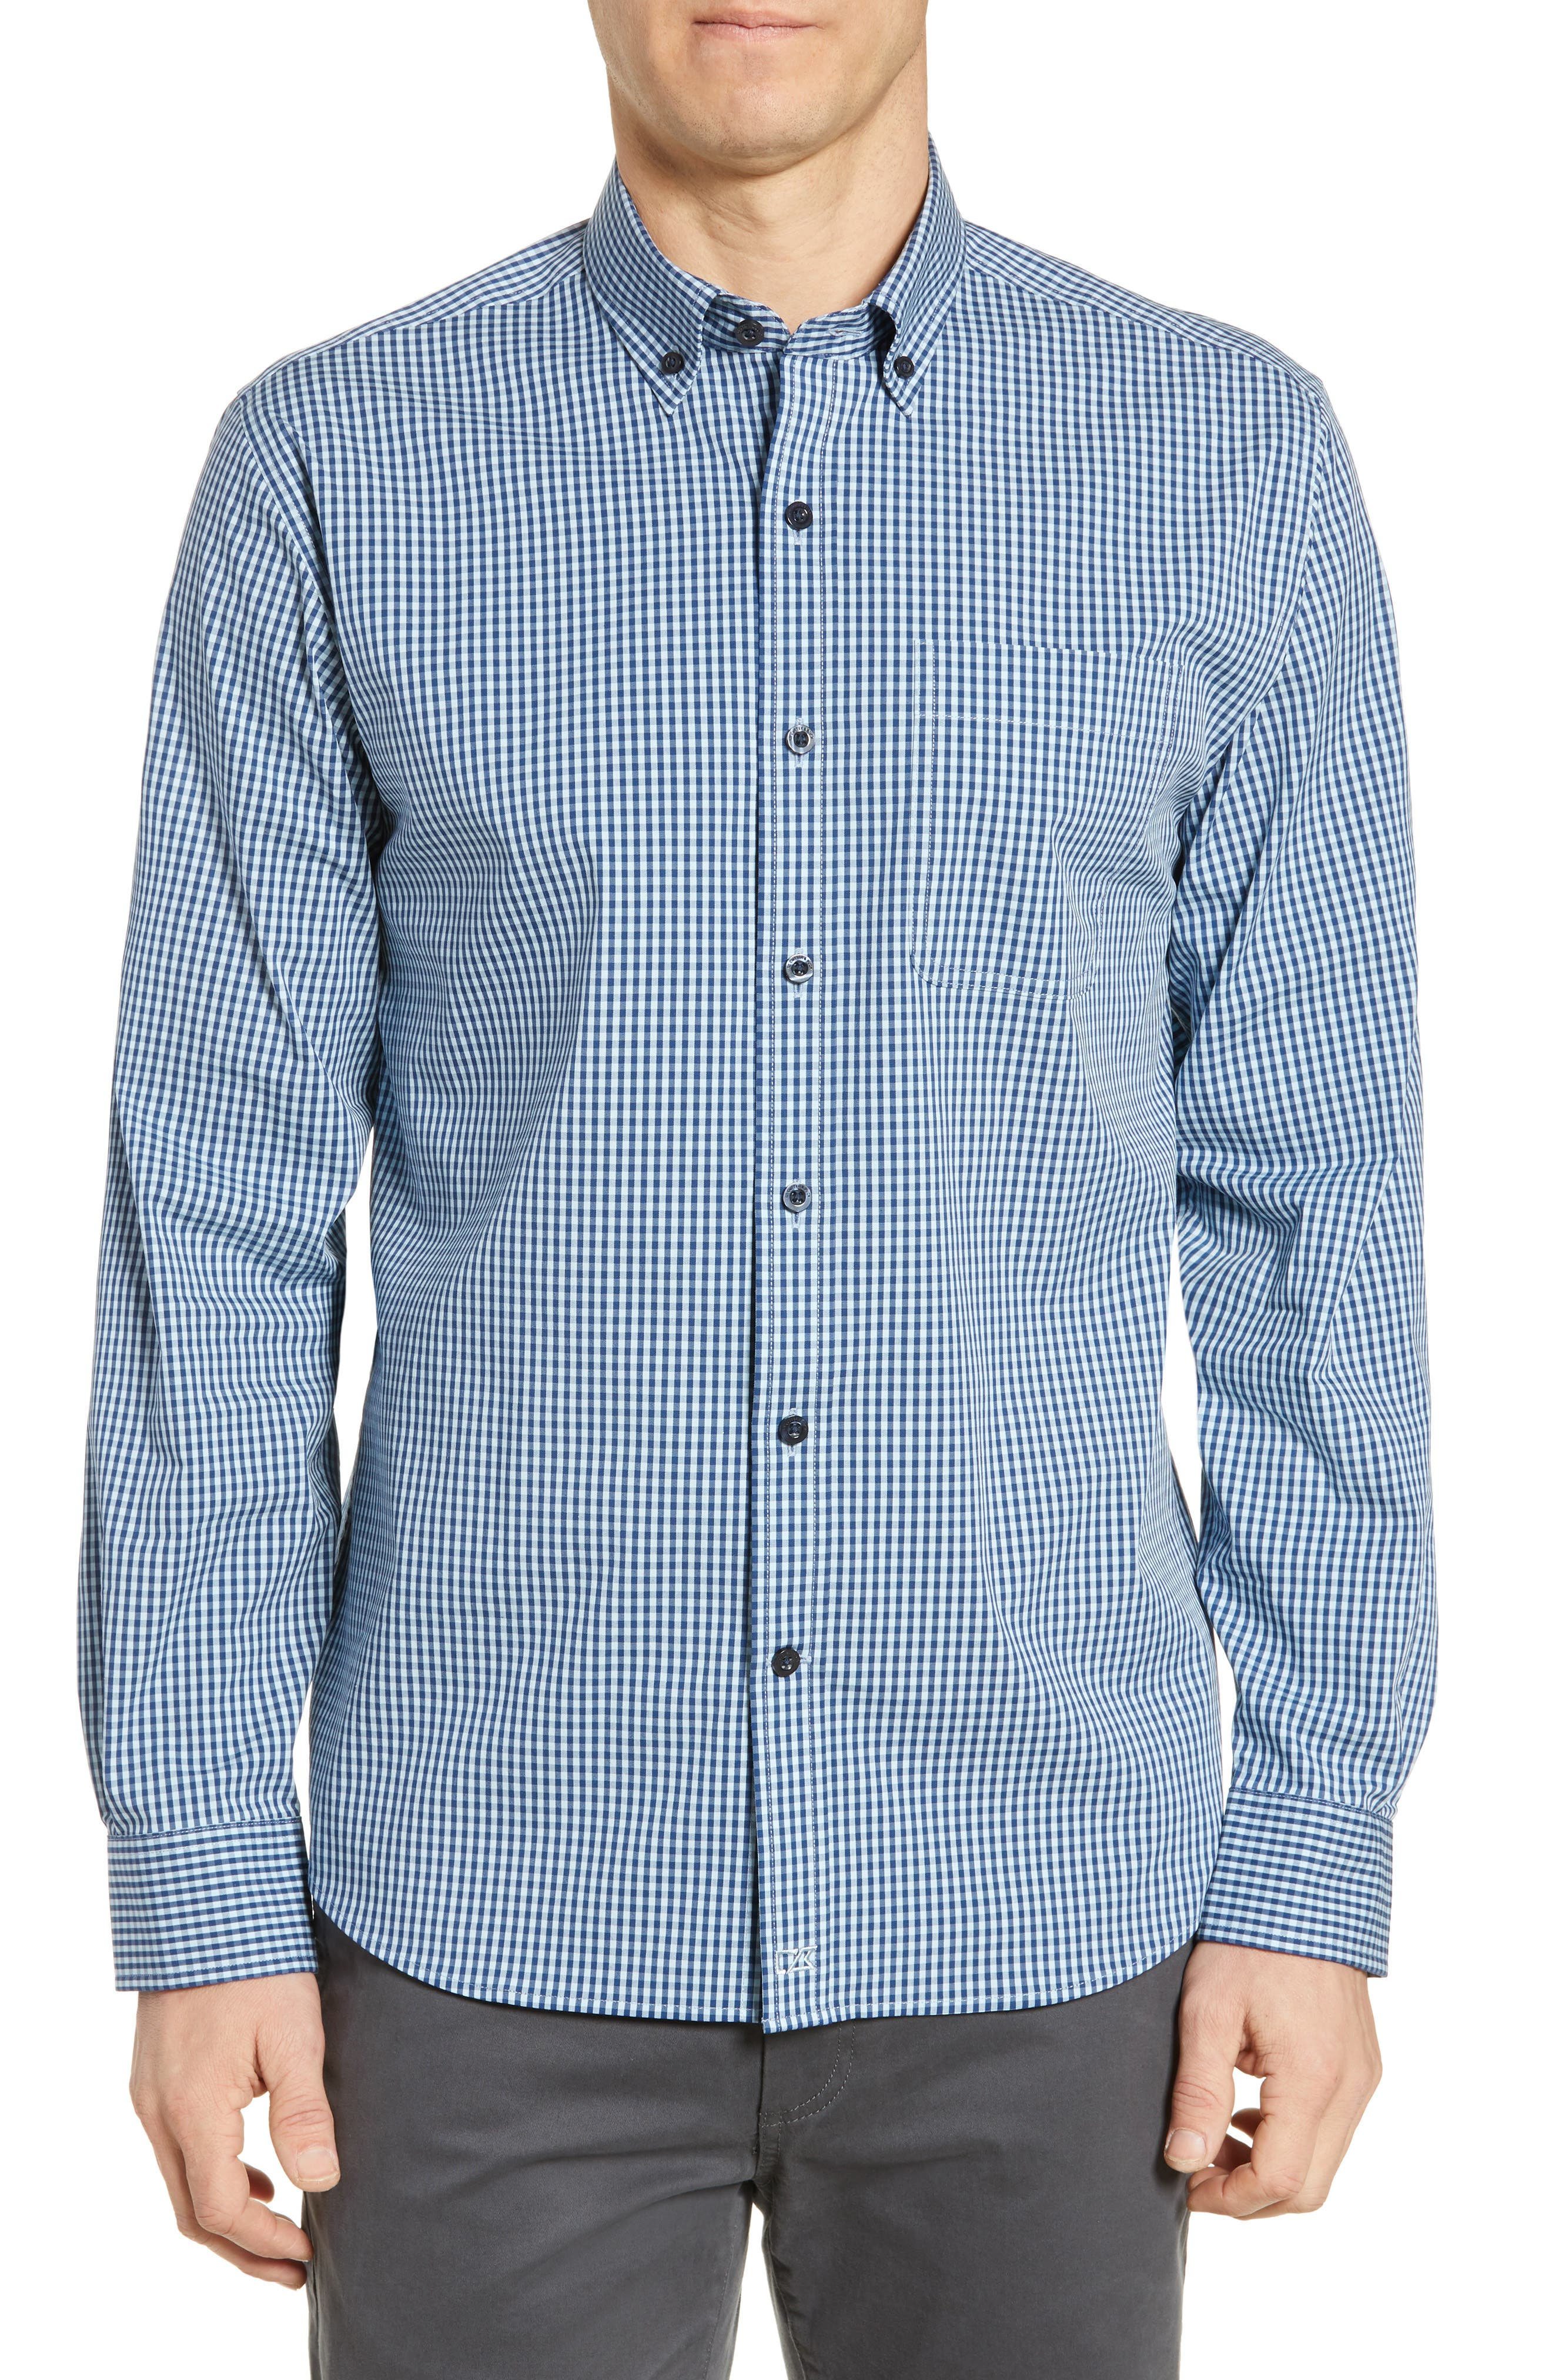 Anchor Classic Fit Gingham Shirt